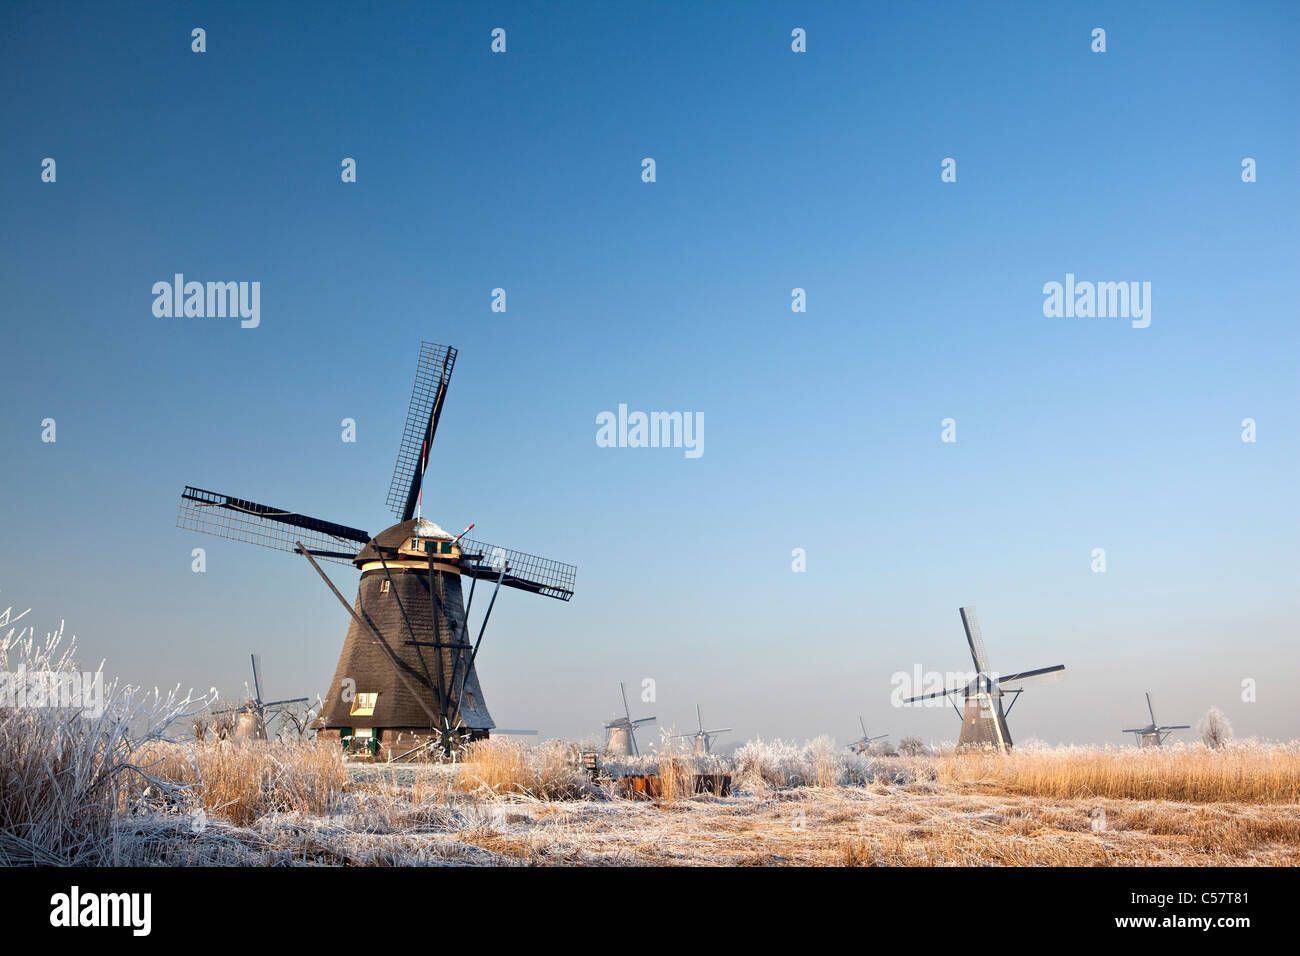 The Netherlands, Kinderdijk, Windmills in snow, Unesco World Heritage Site. - Stock Image